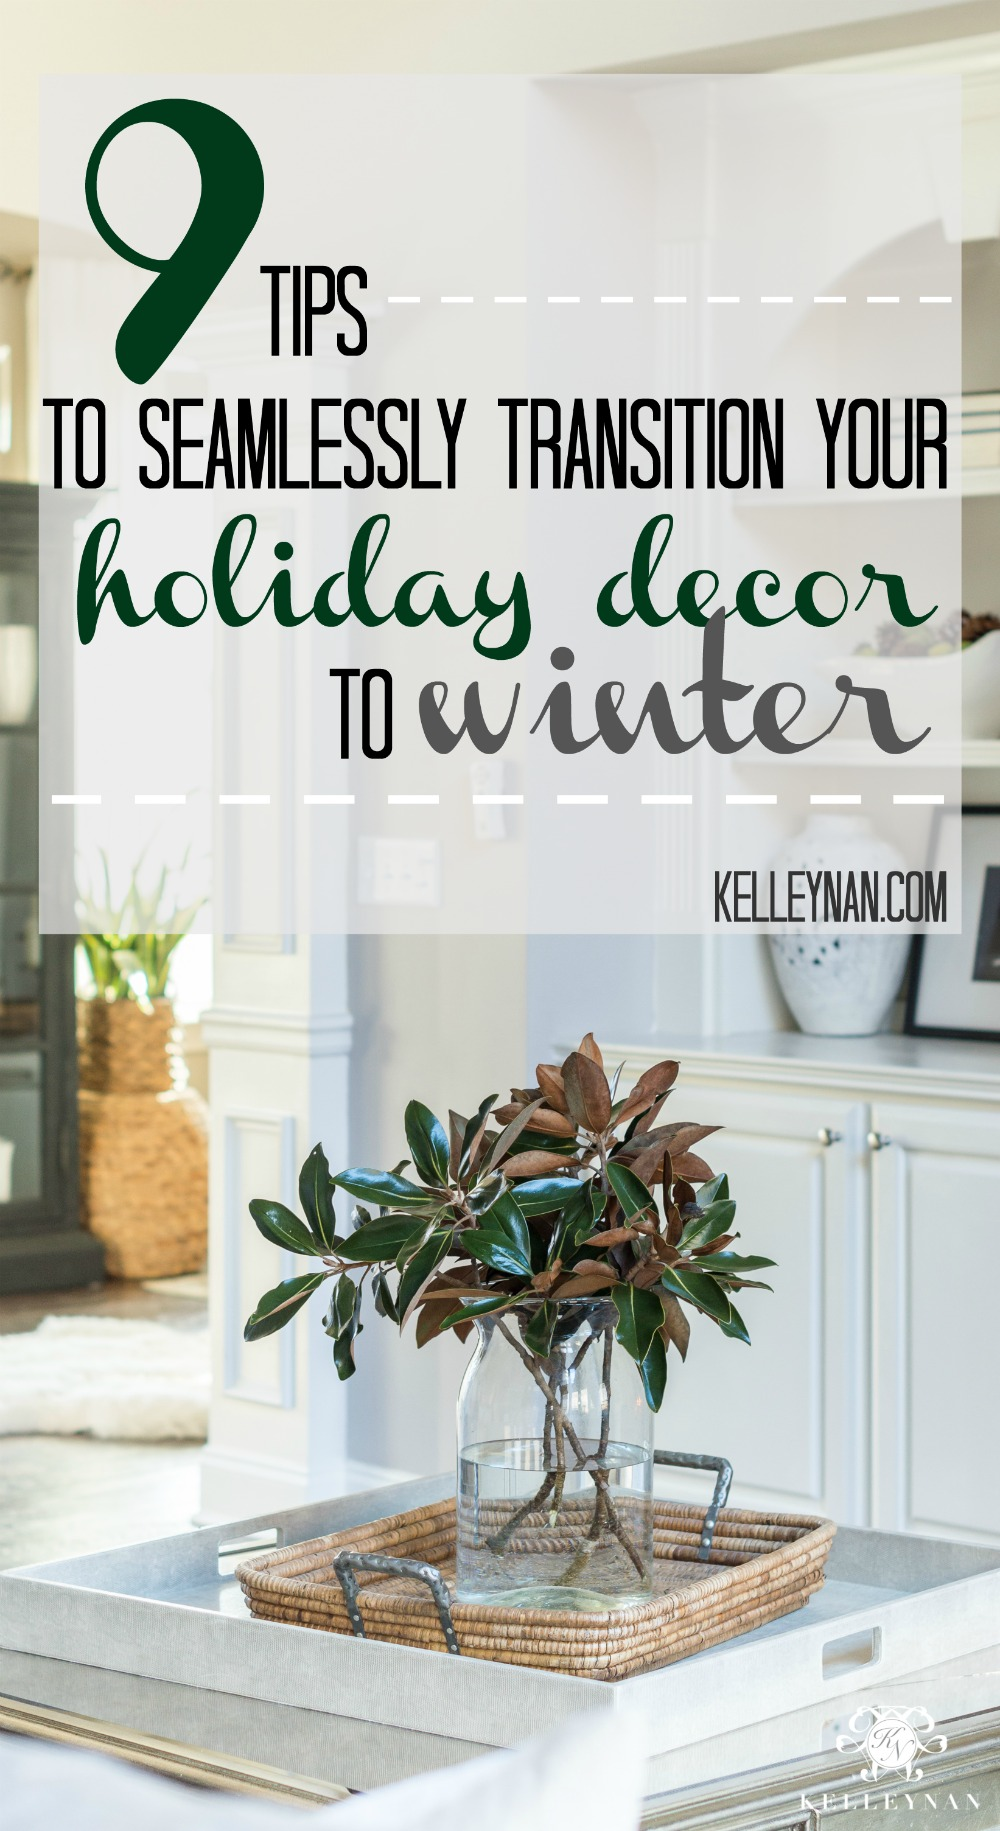 9 Tips to Transition Your Holiday Decor to Winter in that Pre-Spring Lull